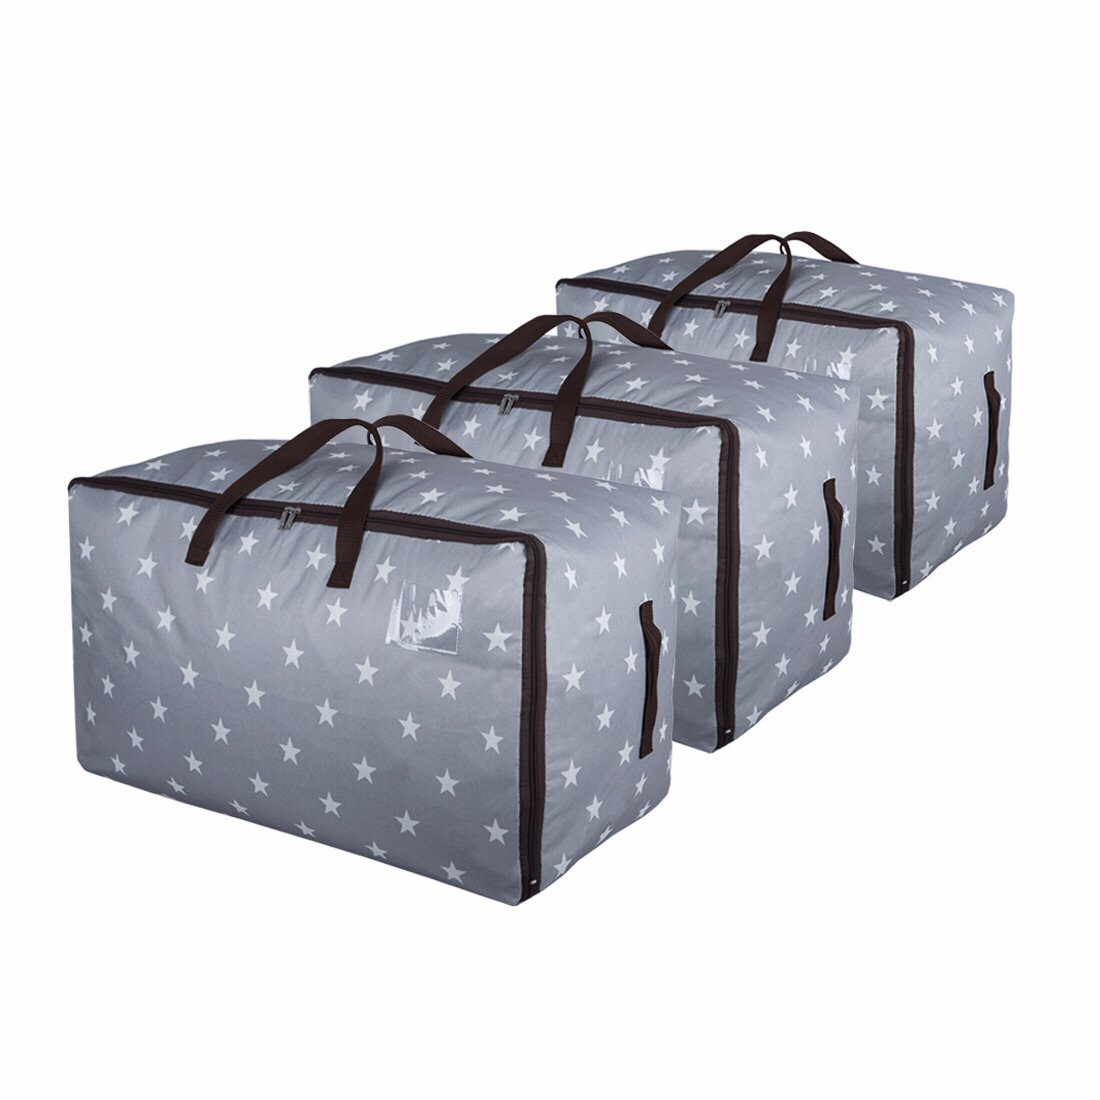 DOKEHOM 3-Pieces 100L Large Storage Bag, Fabric Clothes Bag, Thick Ultra Size Under Bed Storage, Moisture proof (Grey, Set of 3)